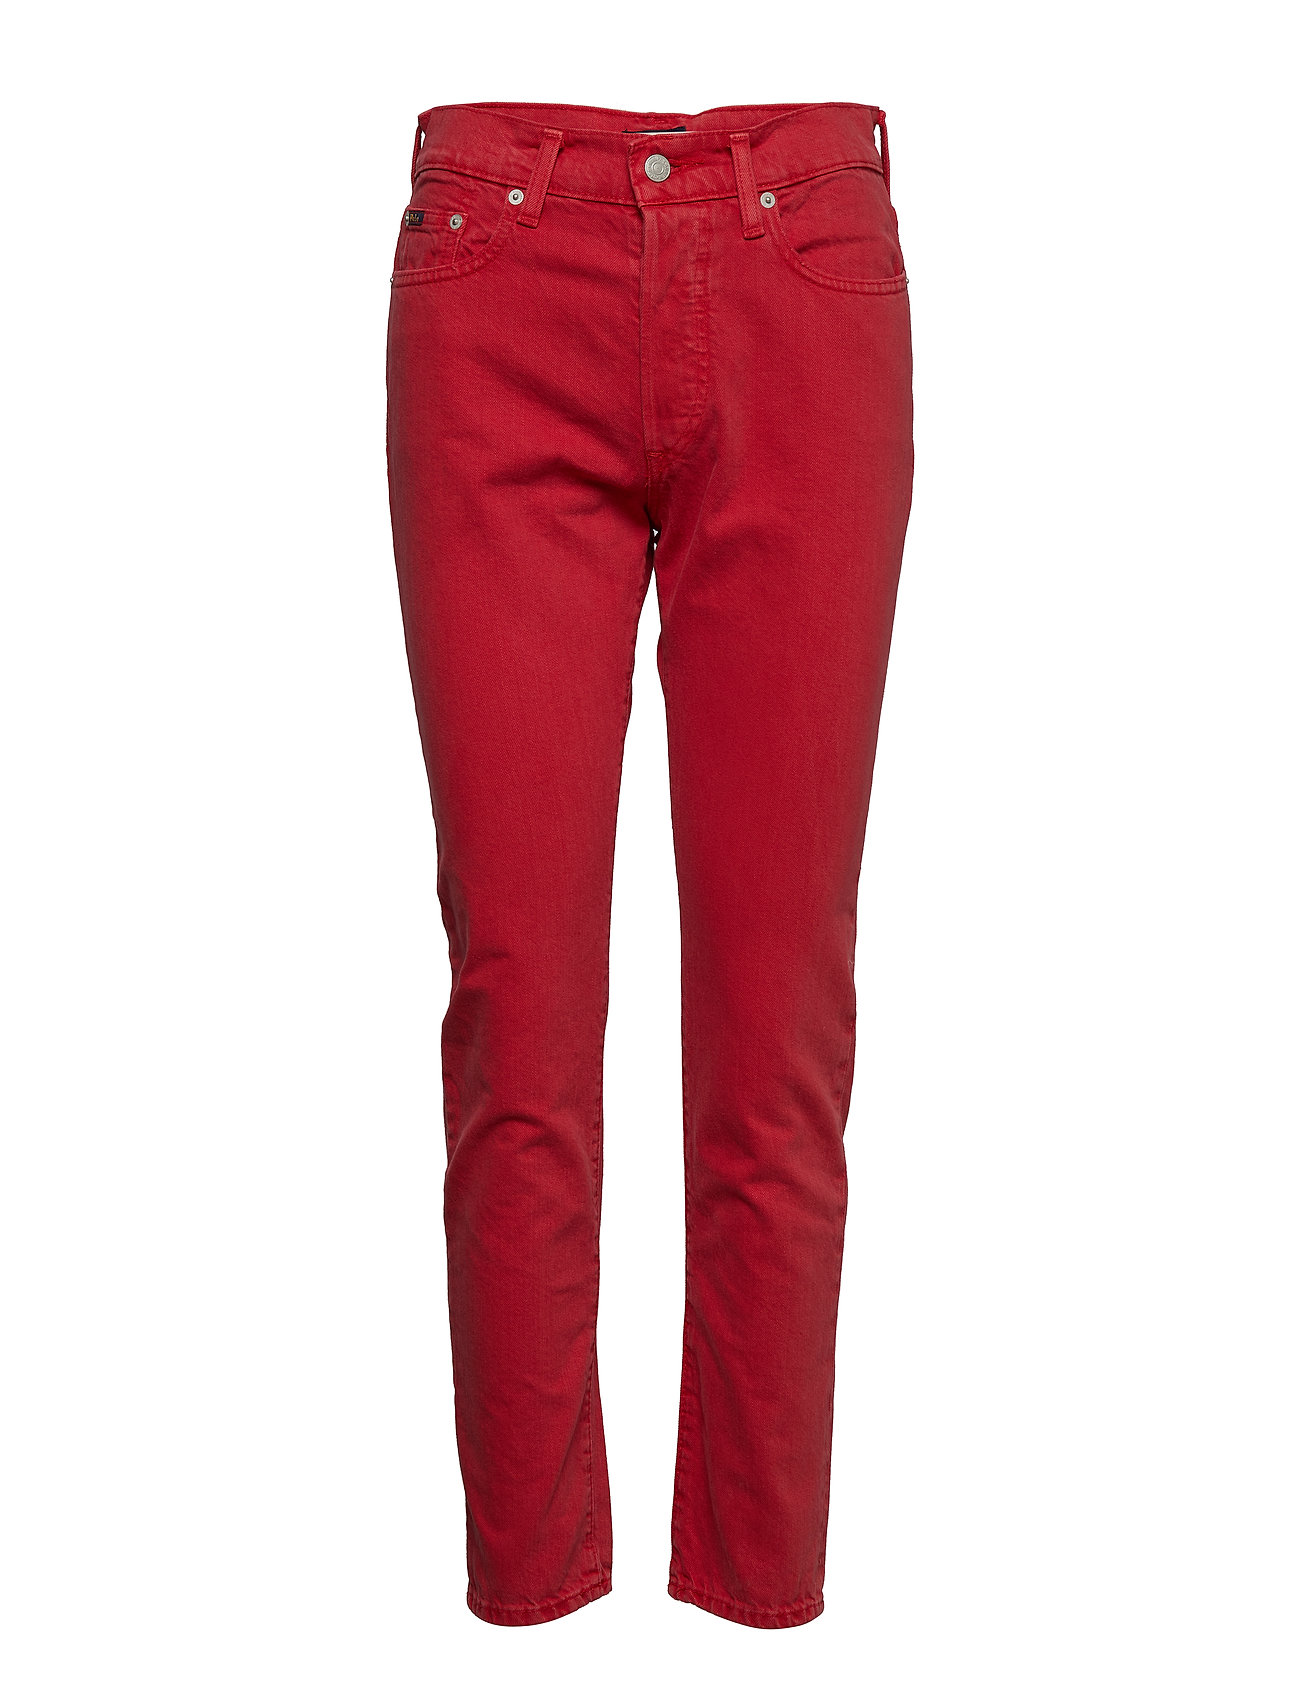 Polo Ralph Lauren Callen High-Rise Slim Jean